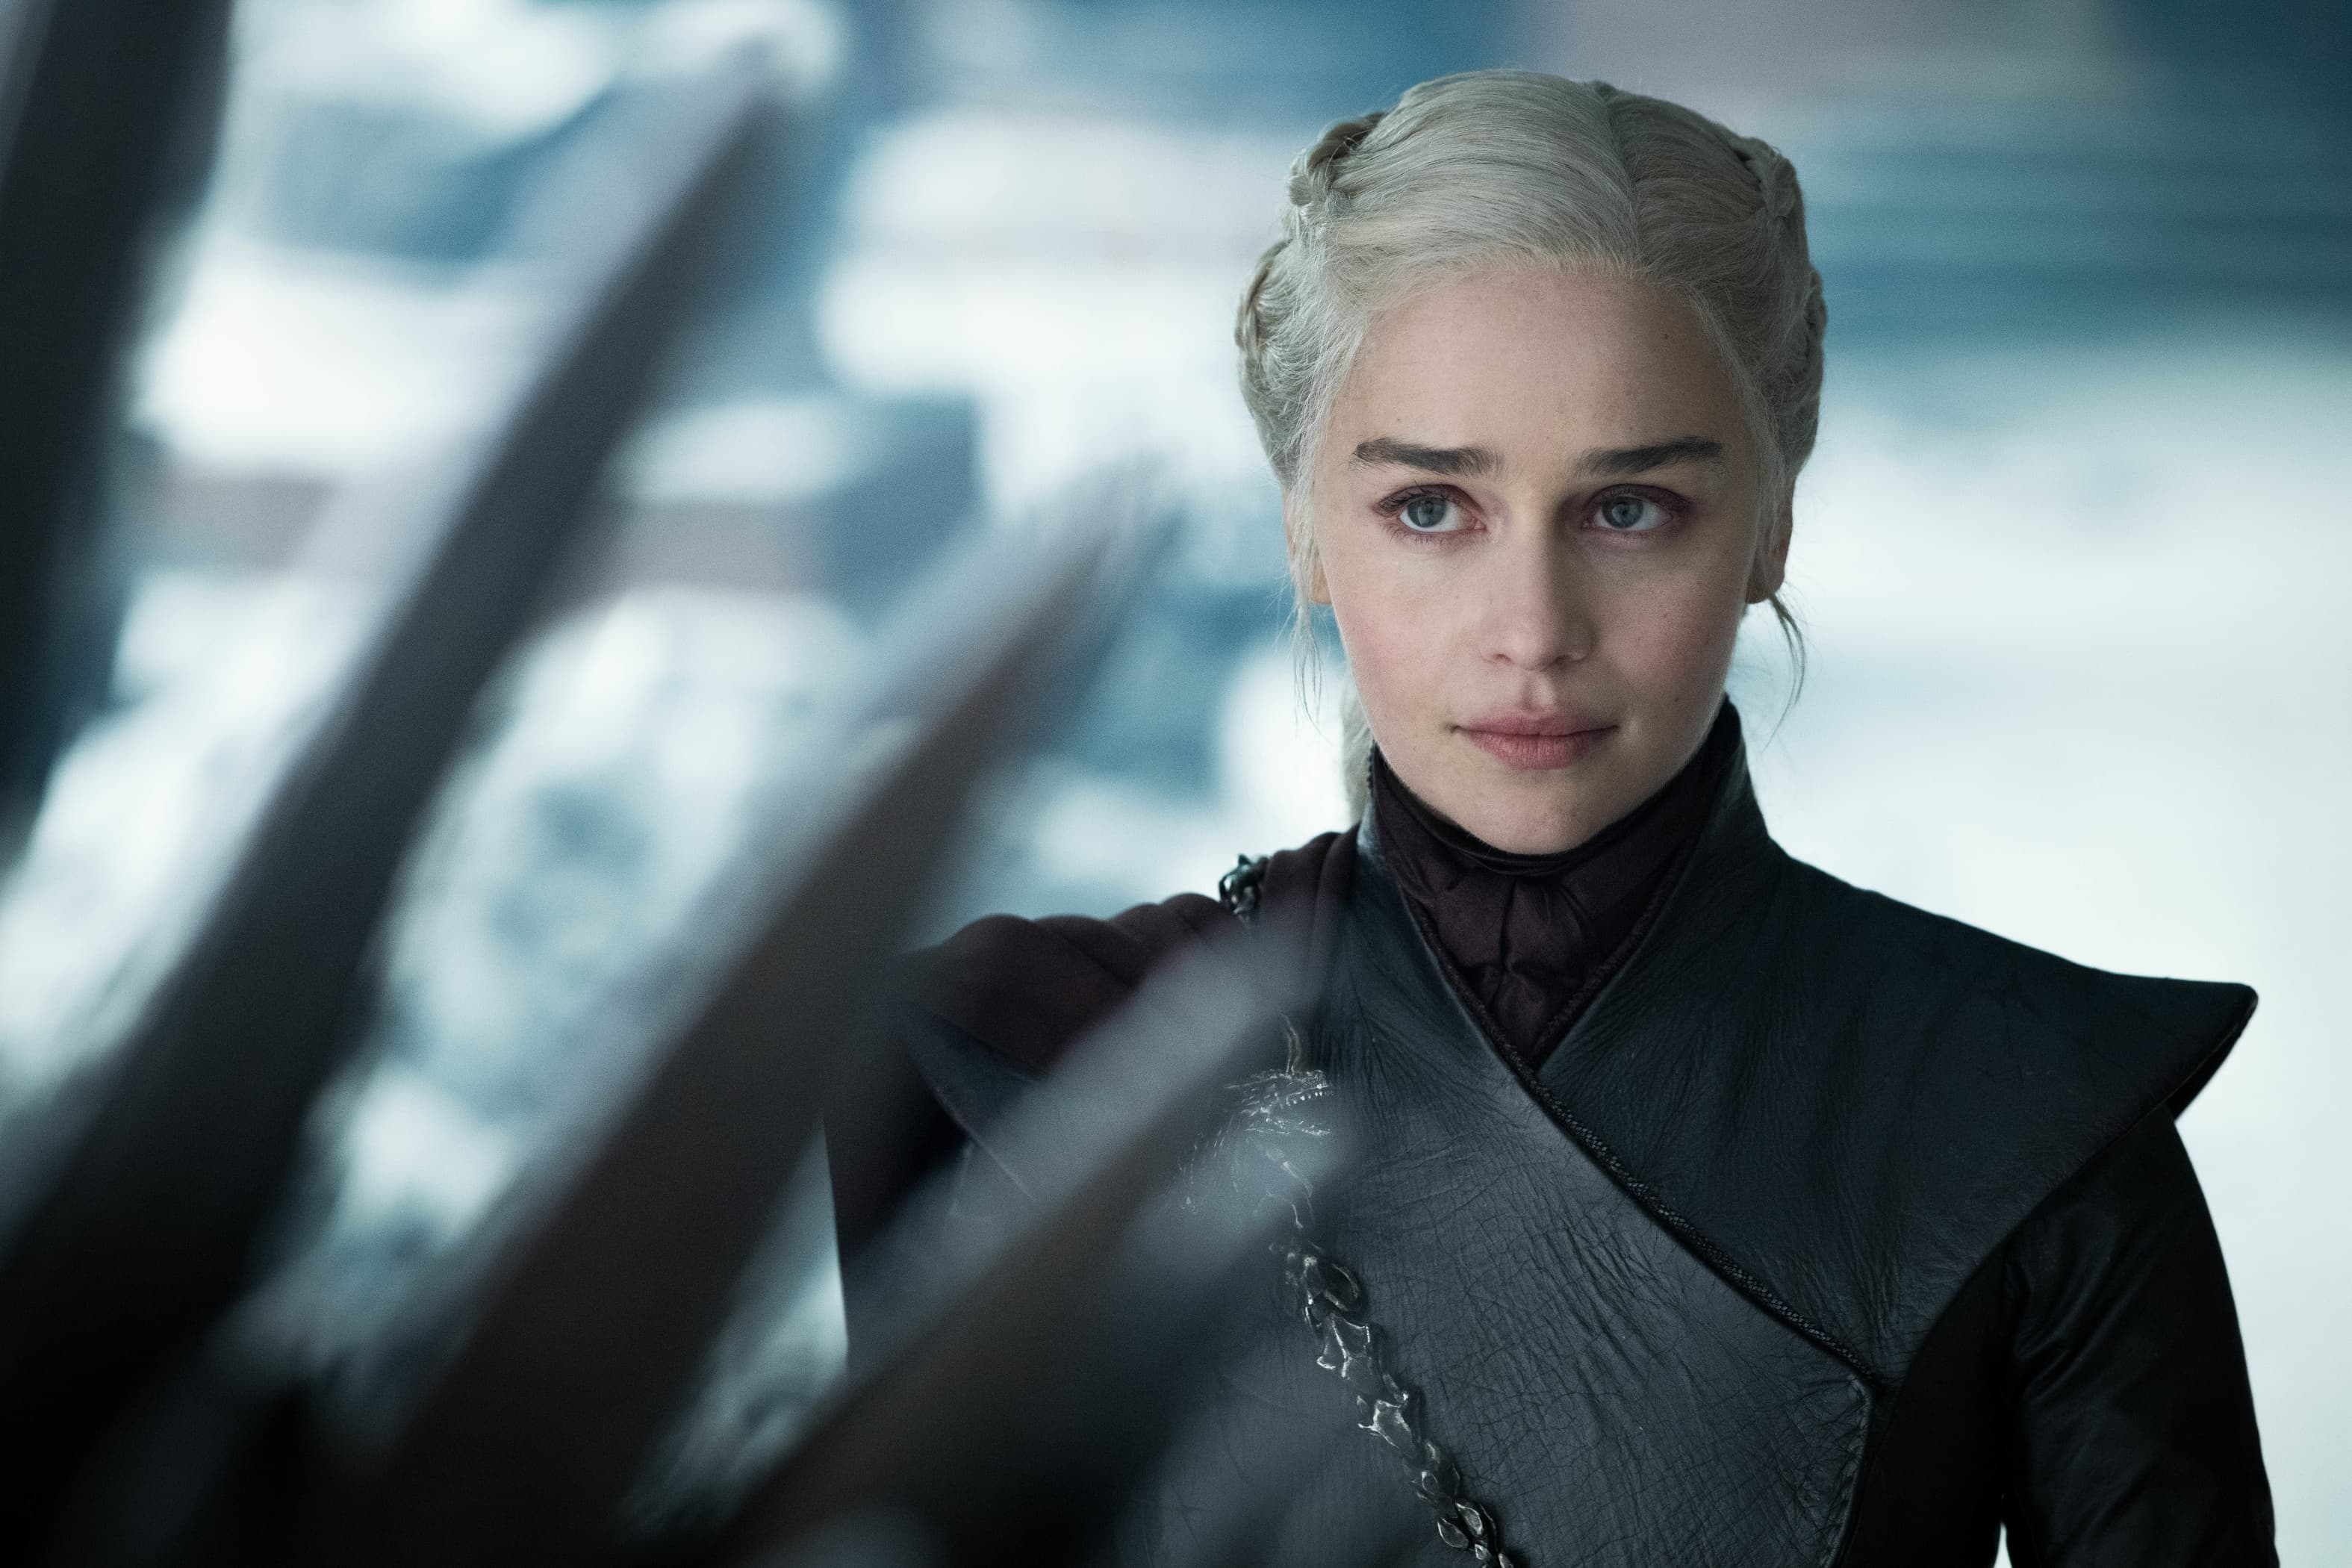 The epic case of Daenerys Targaryen left many fans of the Game of Thrones disappointed.